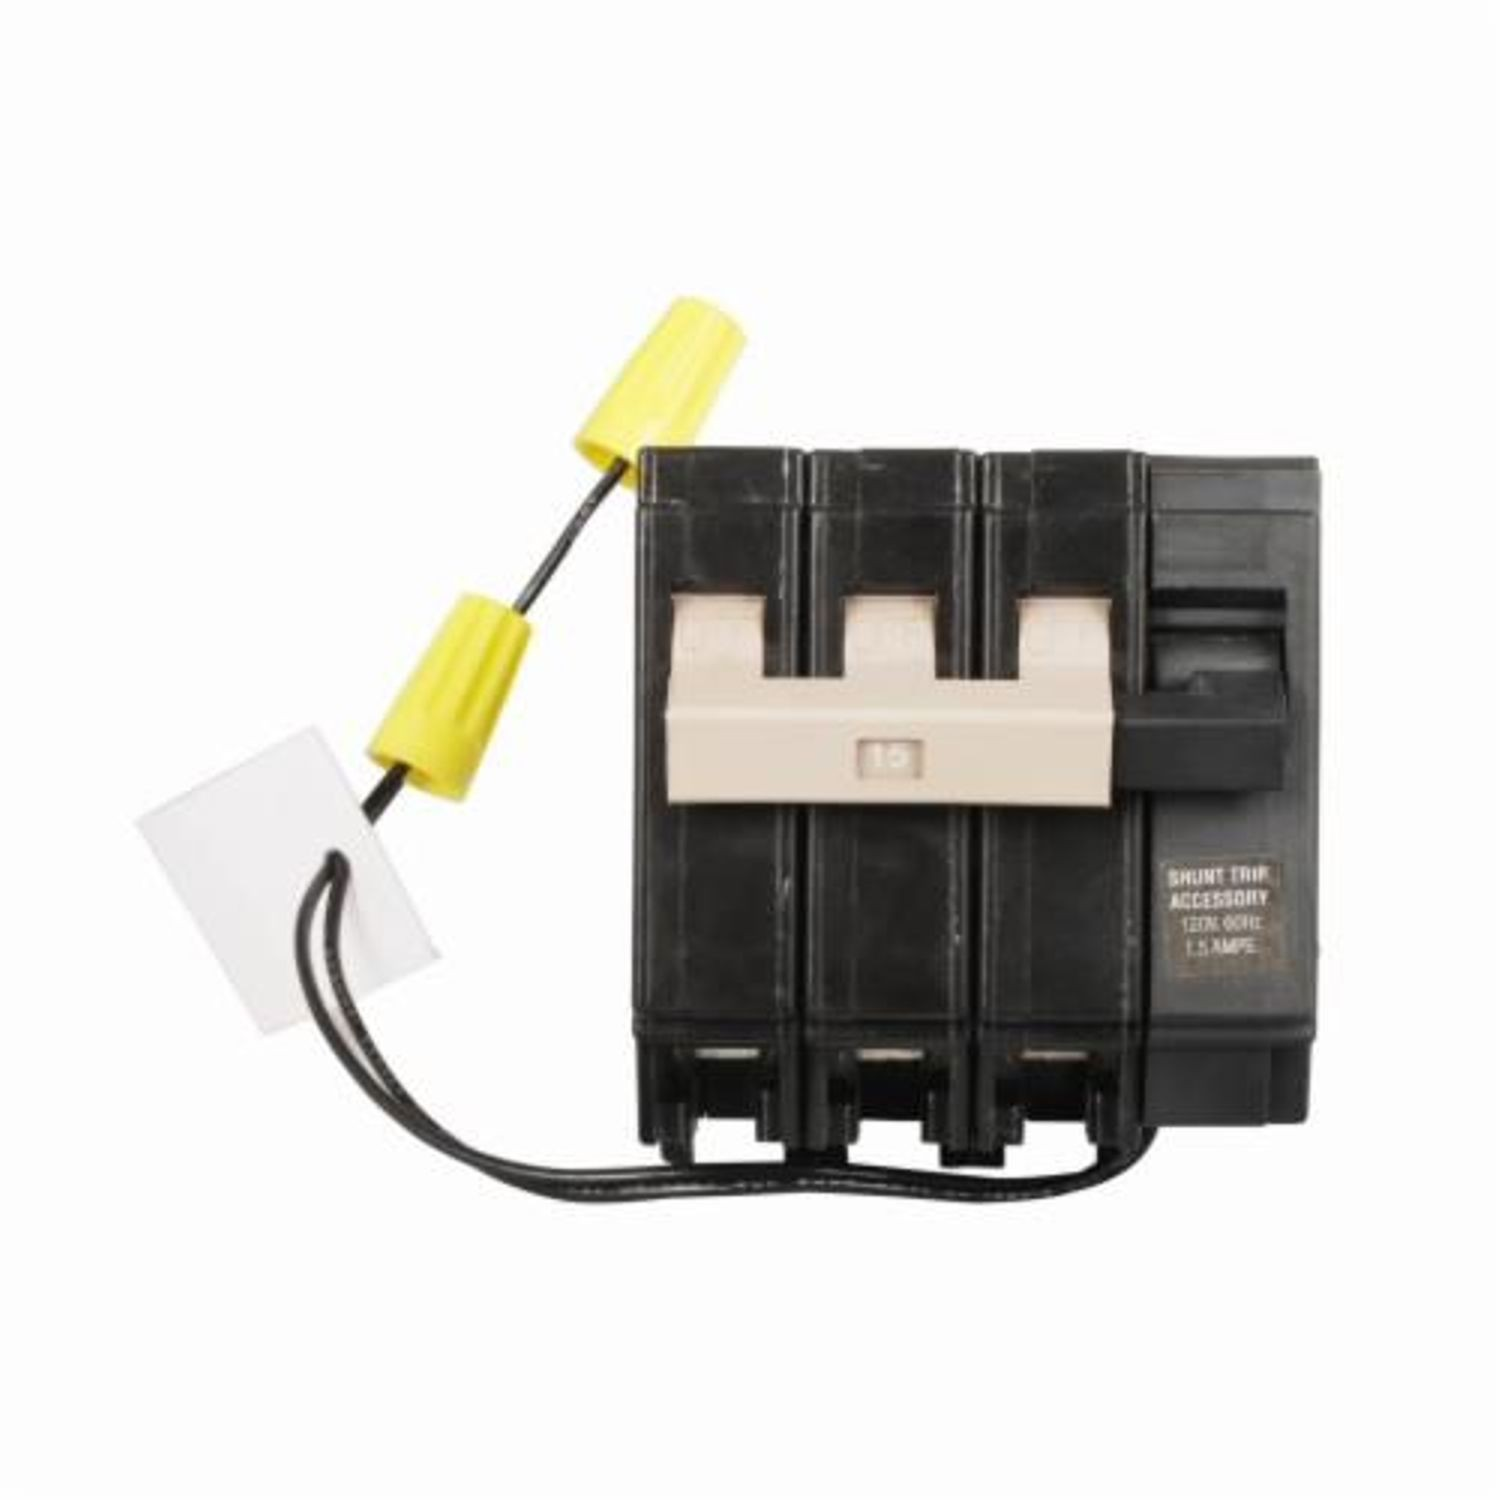 hight resolution of cutler hammer ch350st type ch circuit breaker 120 240 vac 50 a 10 ka interrupt 3 poles common trip state electric